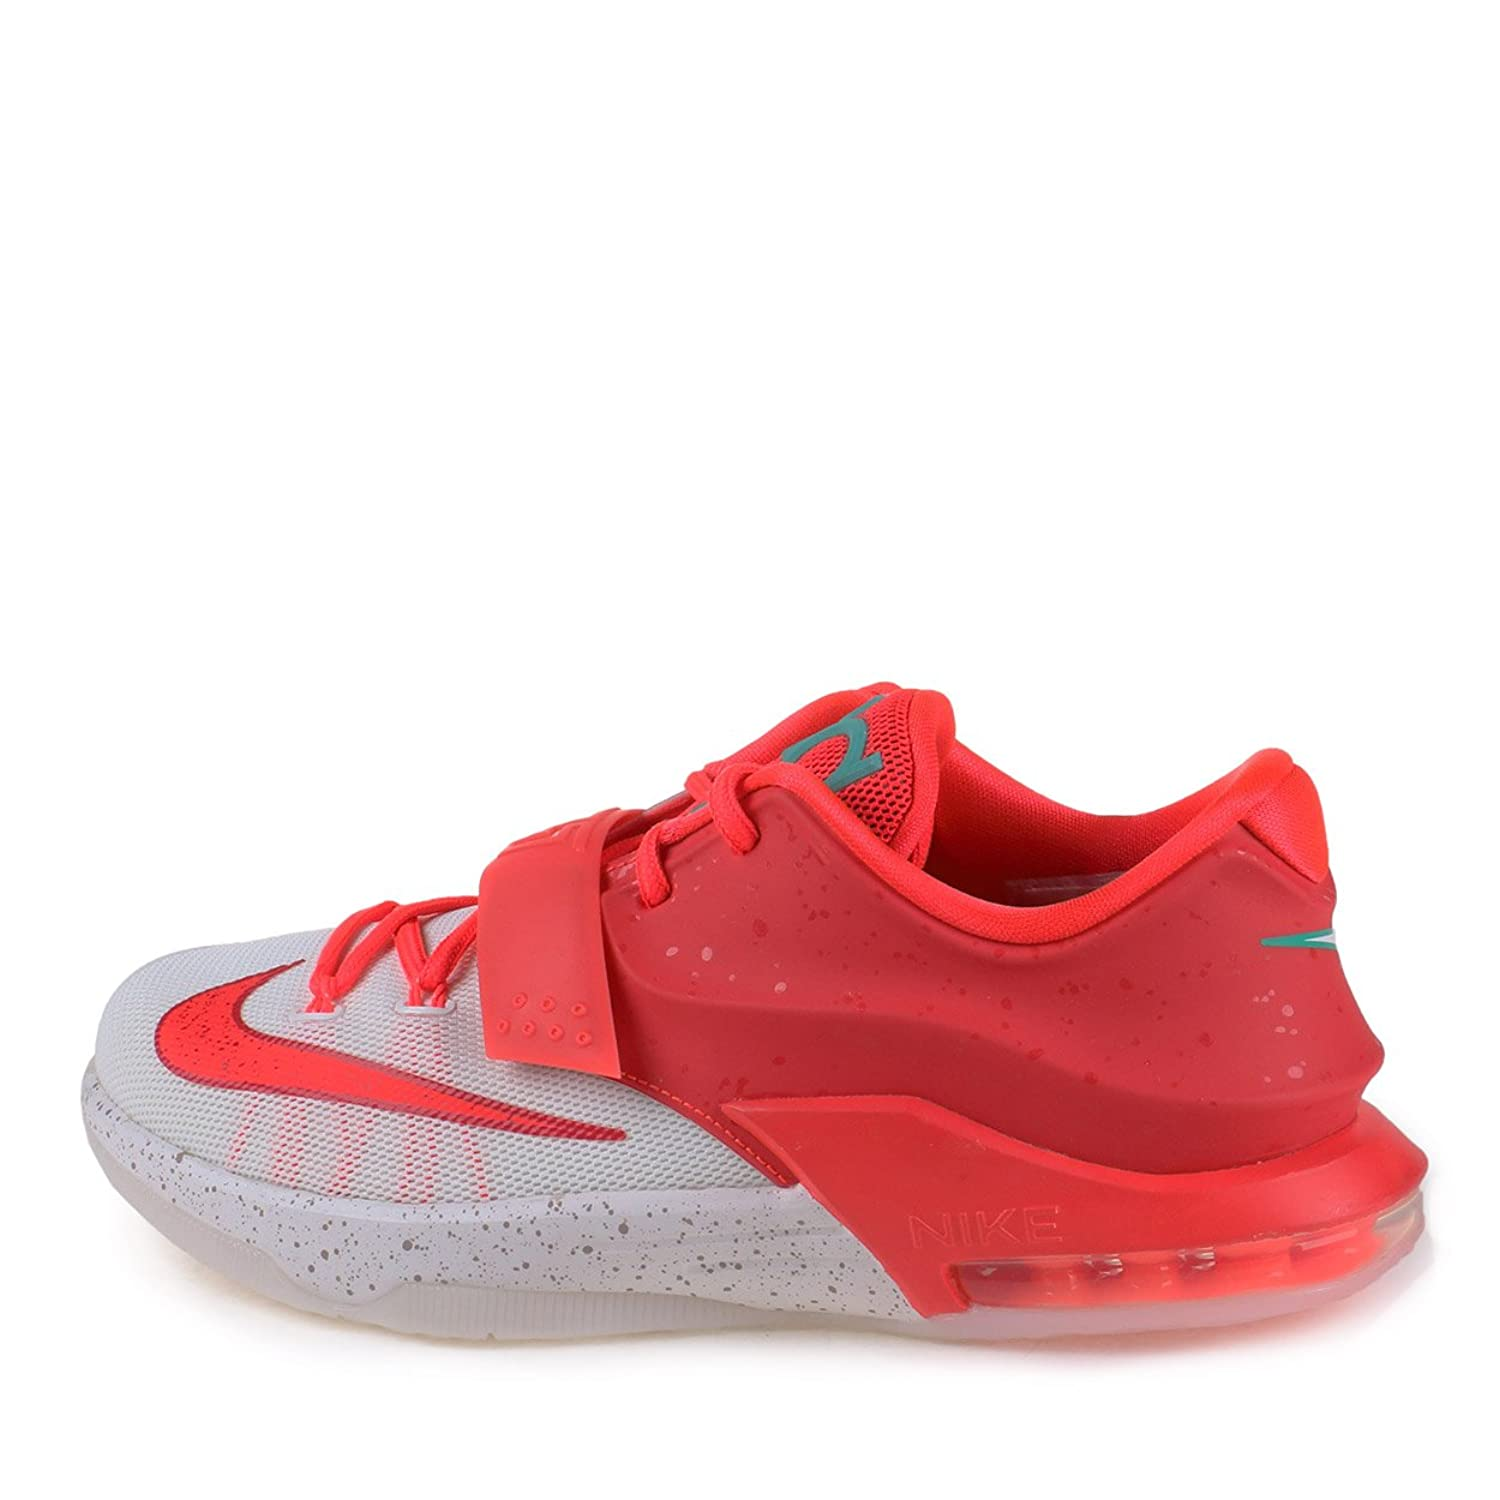 Amazon.com | Nike Boys KD VII (GS) "|1500|1500|?|False|5f023b8acef544f9f18fe0f845f0fbea|False|UNLIKELY|0.3306640684604645